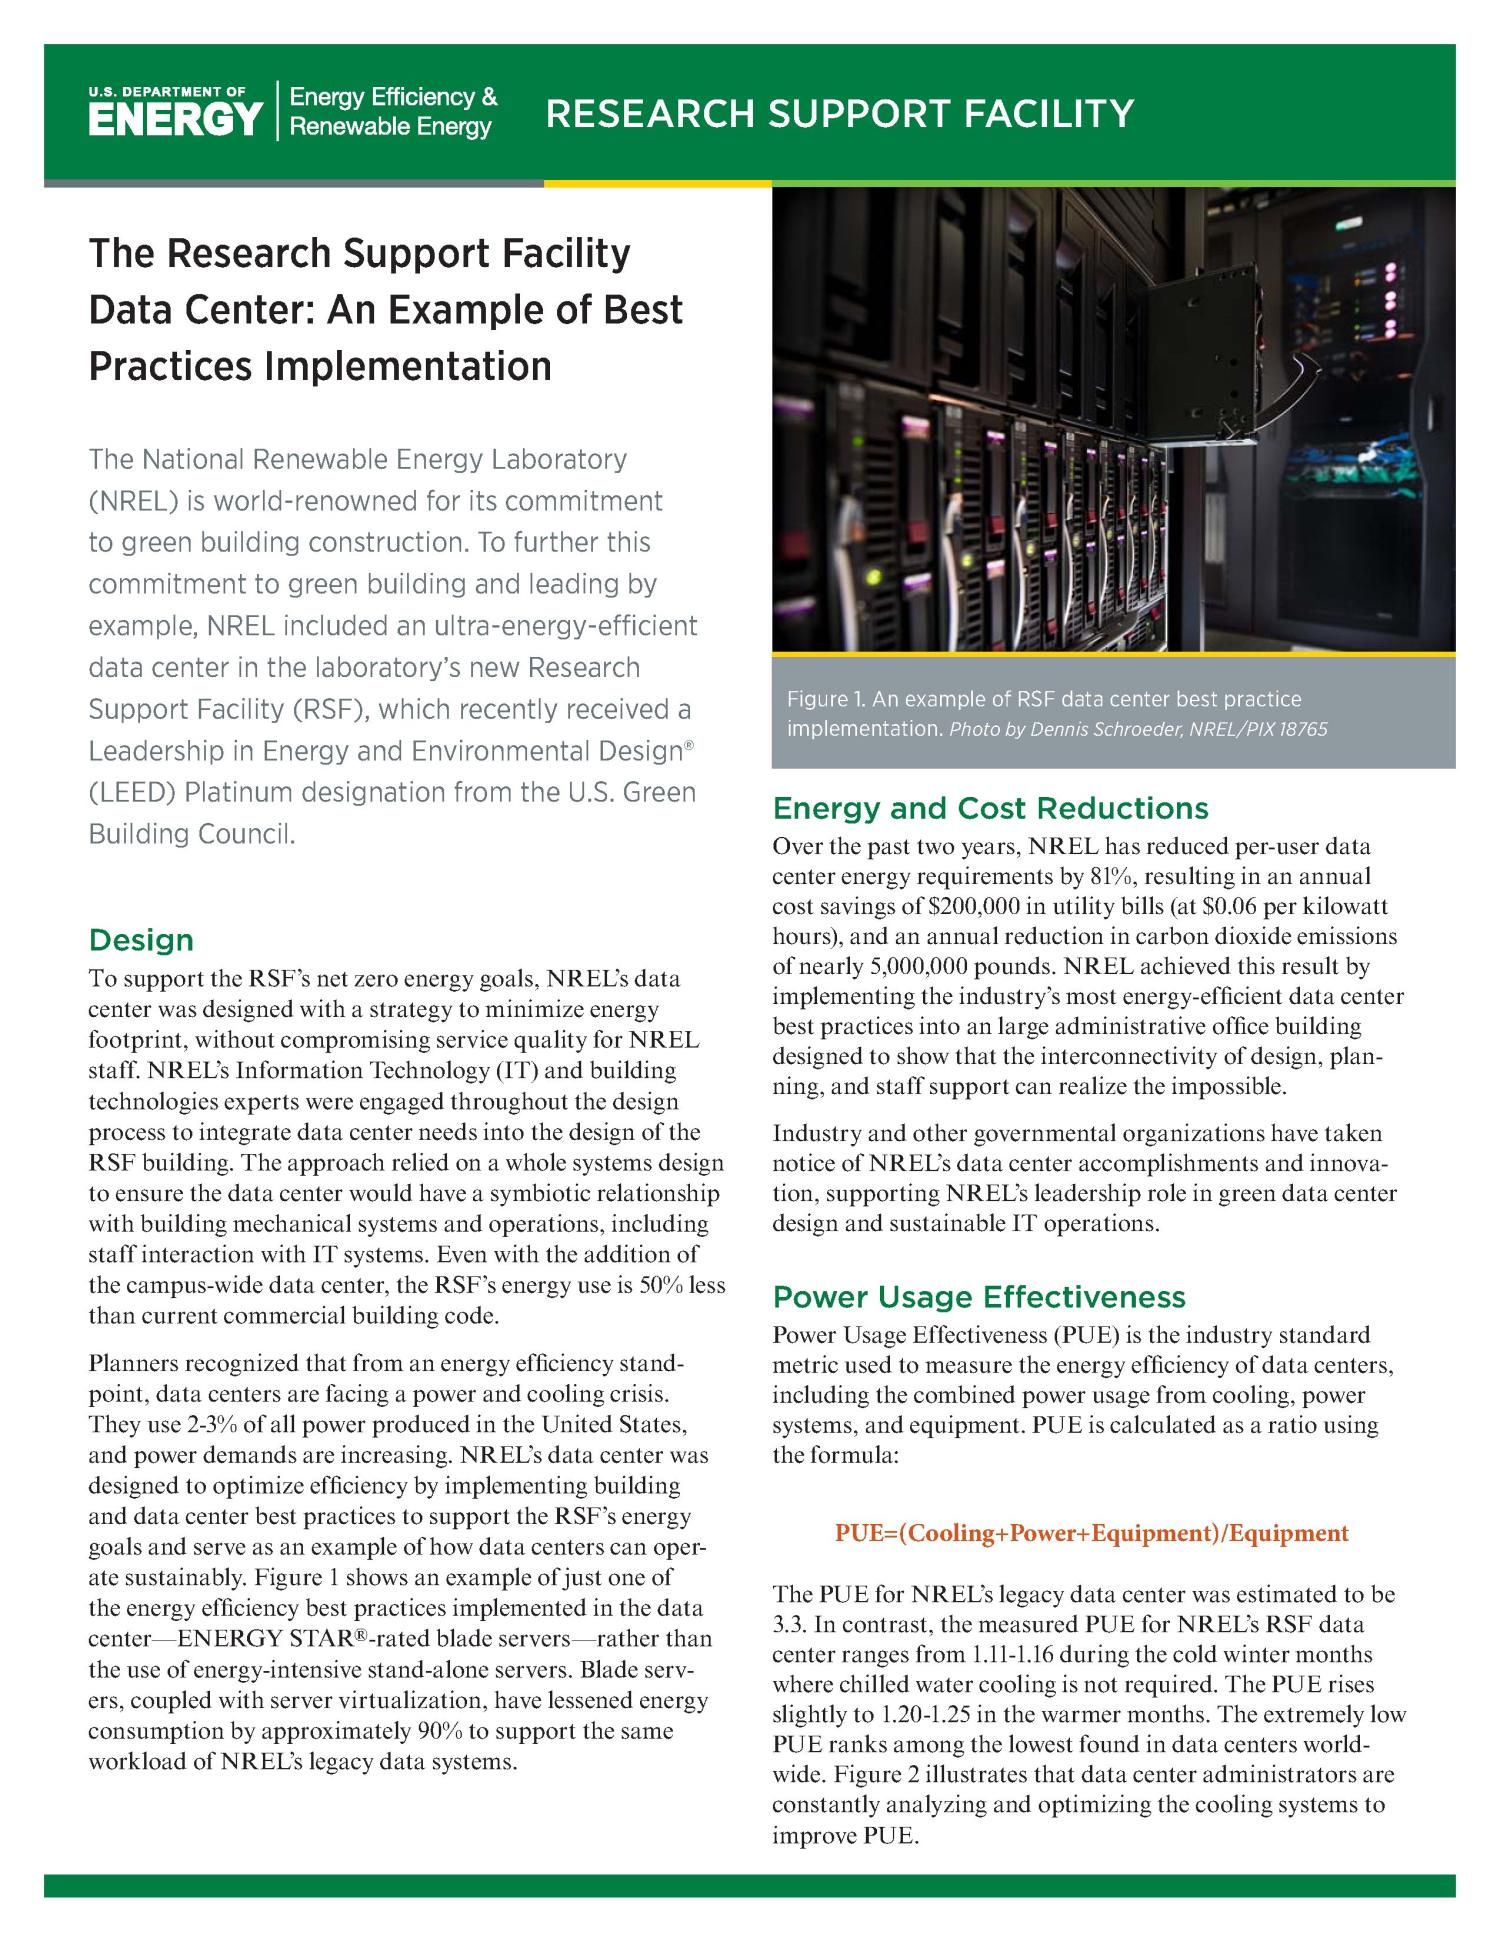 Research Support Facility Data Center An Example Of Best Practices Implementation Brochure Unt Digital Library